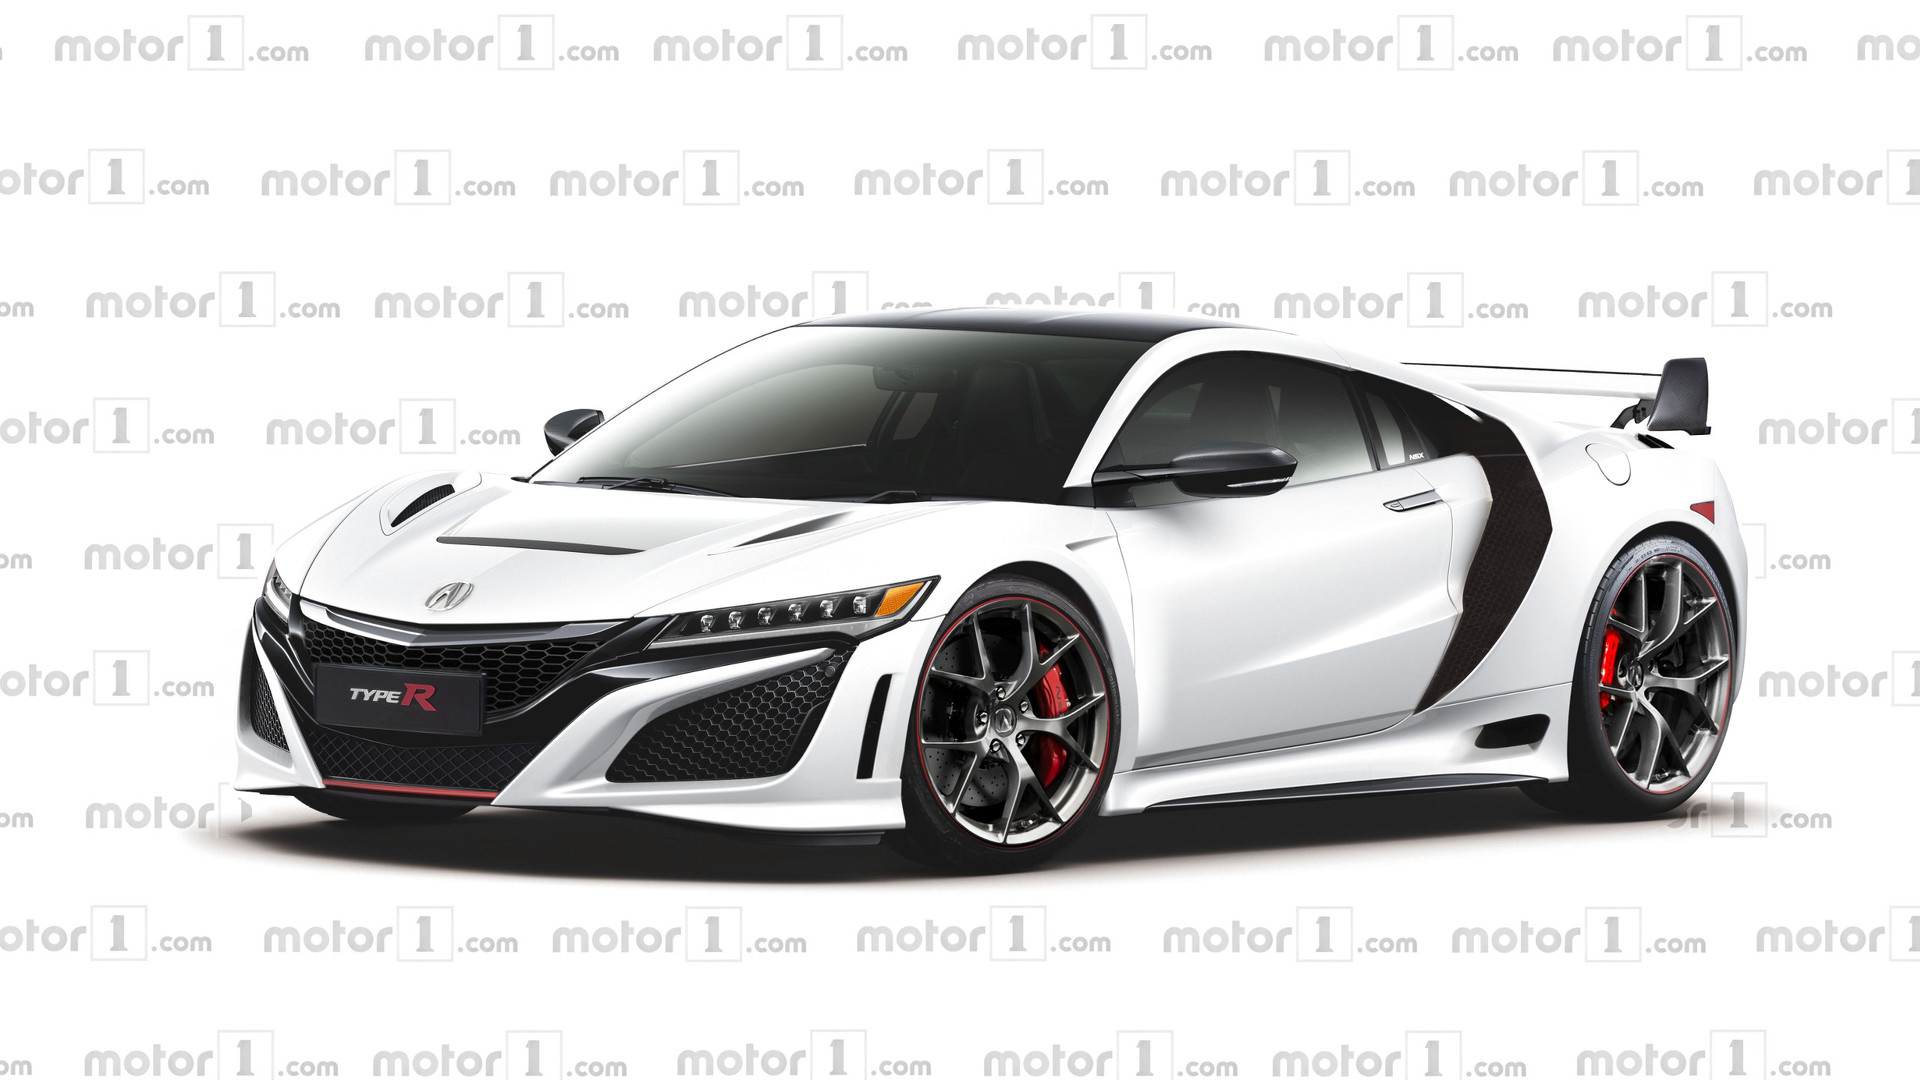 Acura Nsx Type R To Debut In October With 650 Hp 200k Price Update